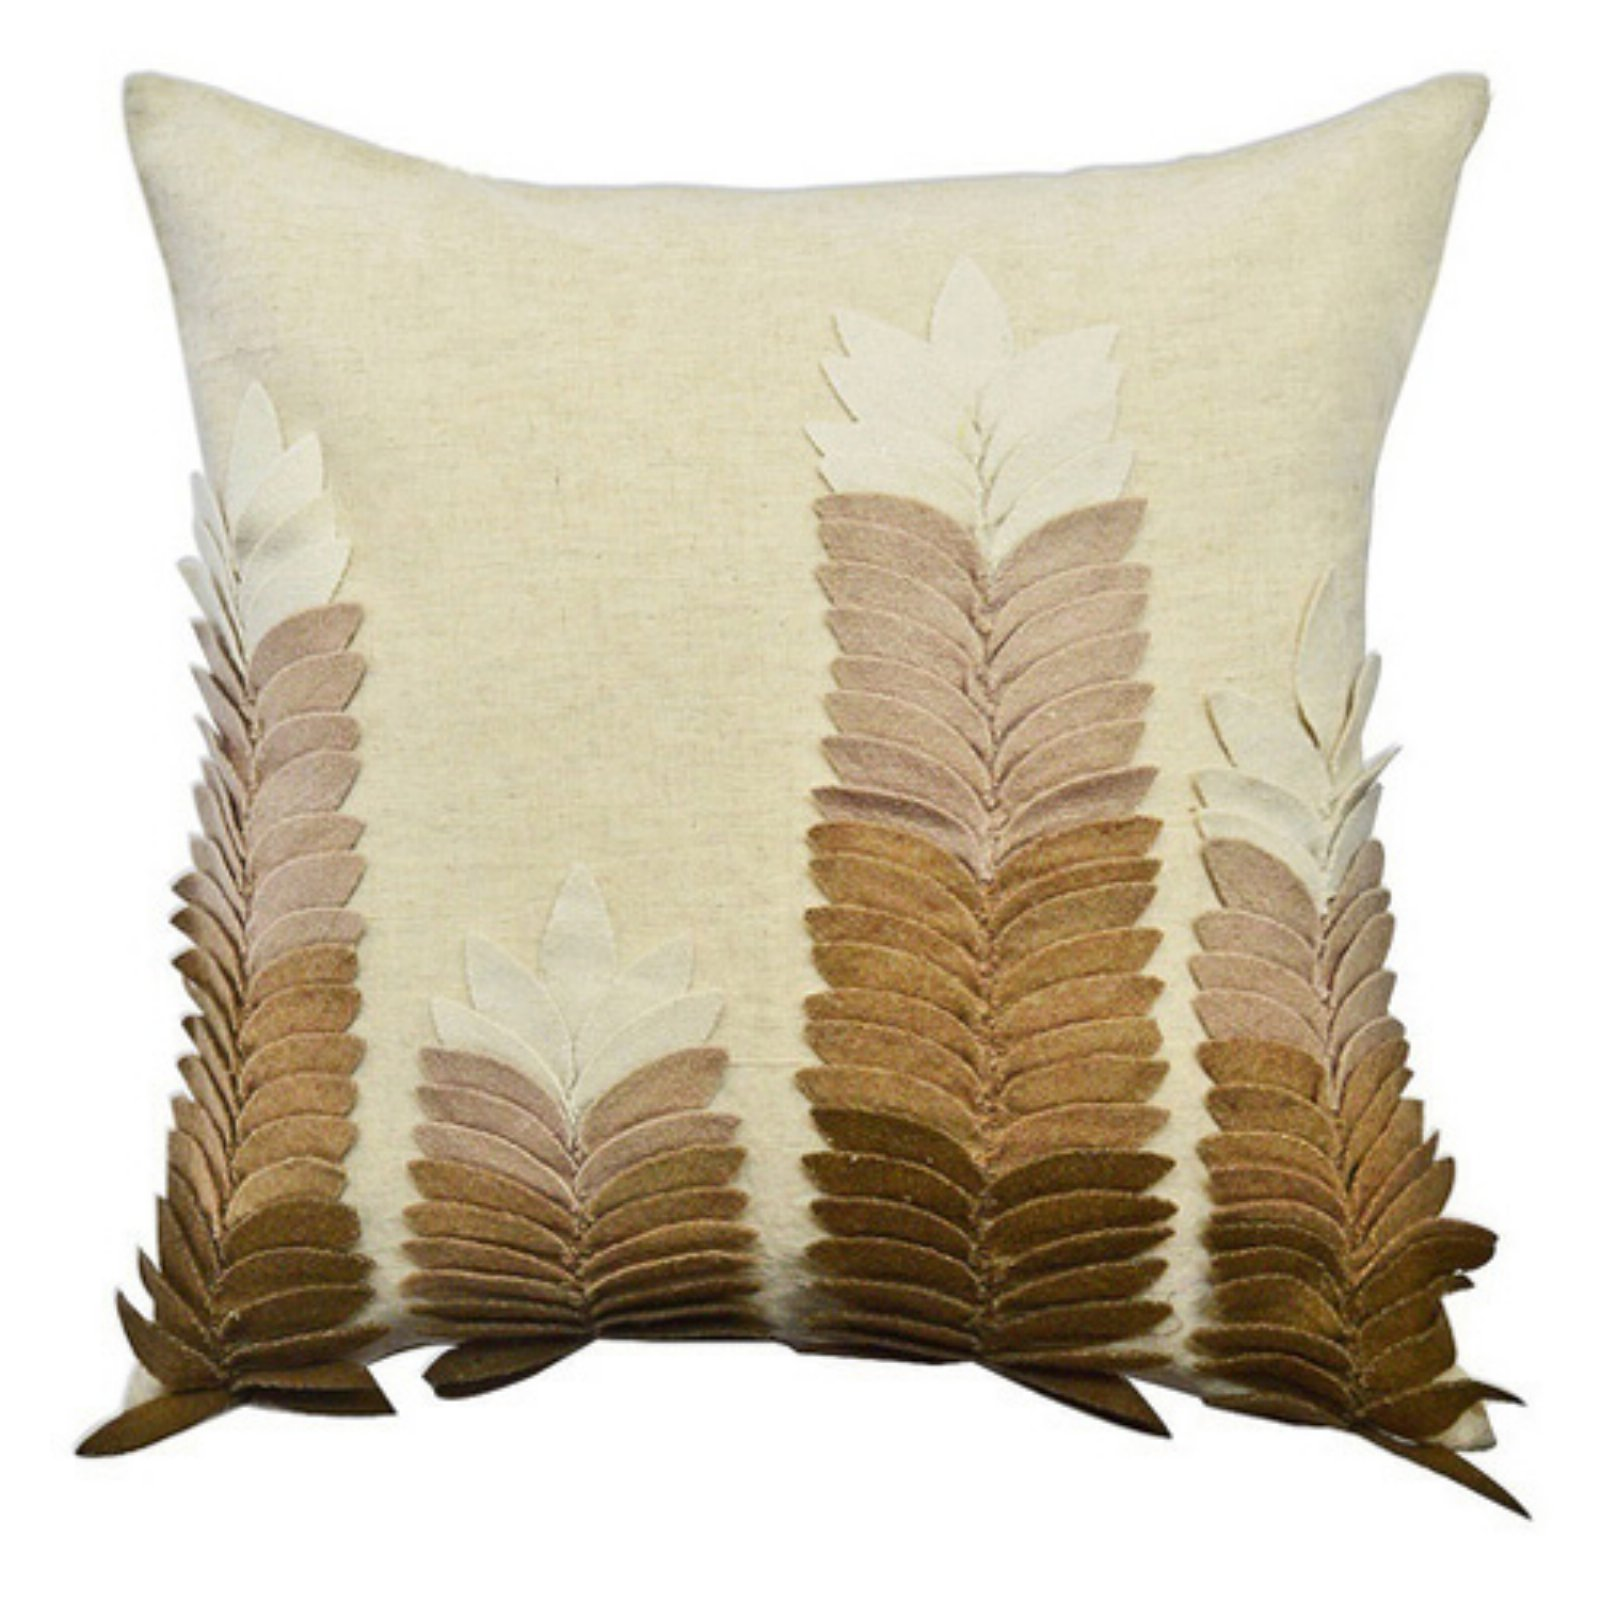 Image of A1 Home Collections Beige and Brown Felt Leaves Applique Throw Pillow